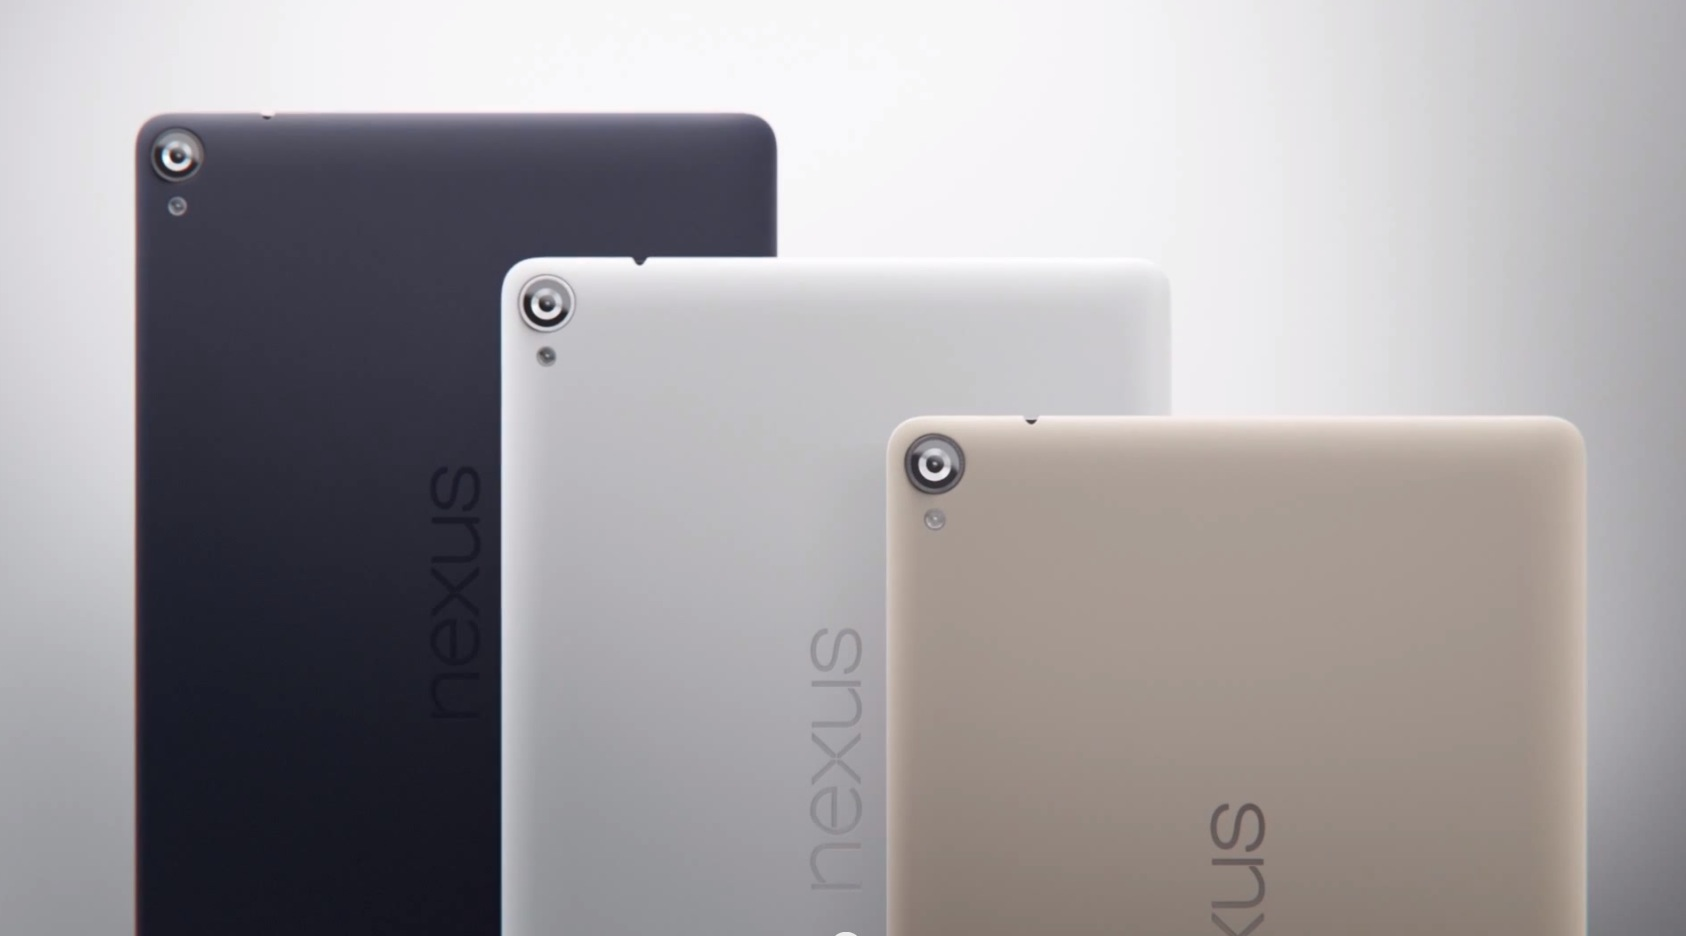 htc-nexus-9-sand-now-up-for-grabs